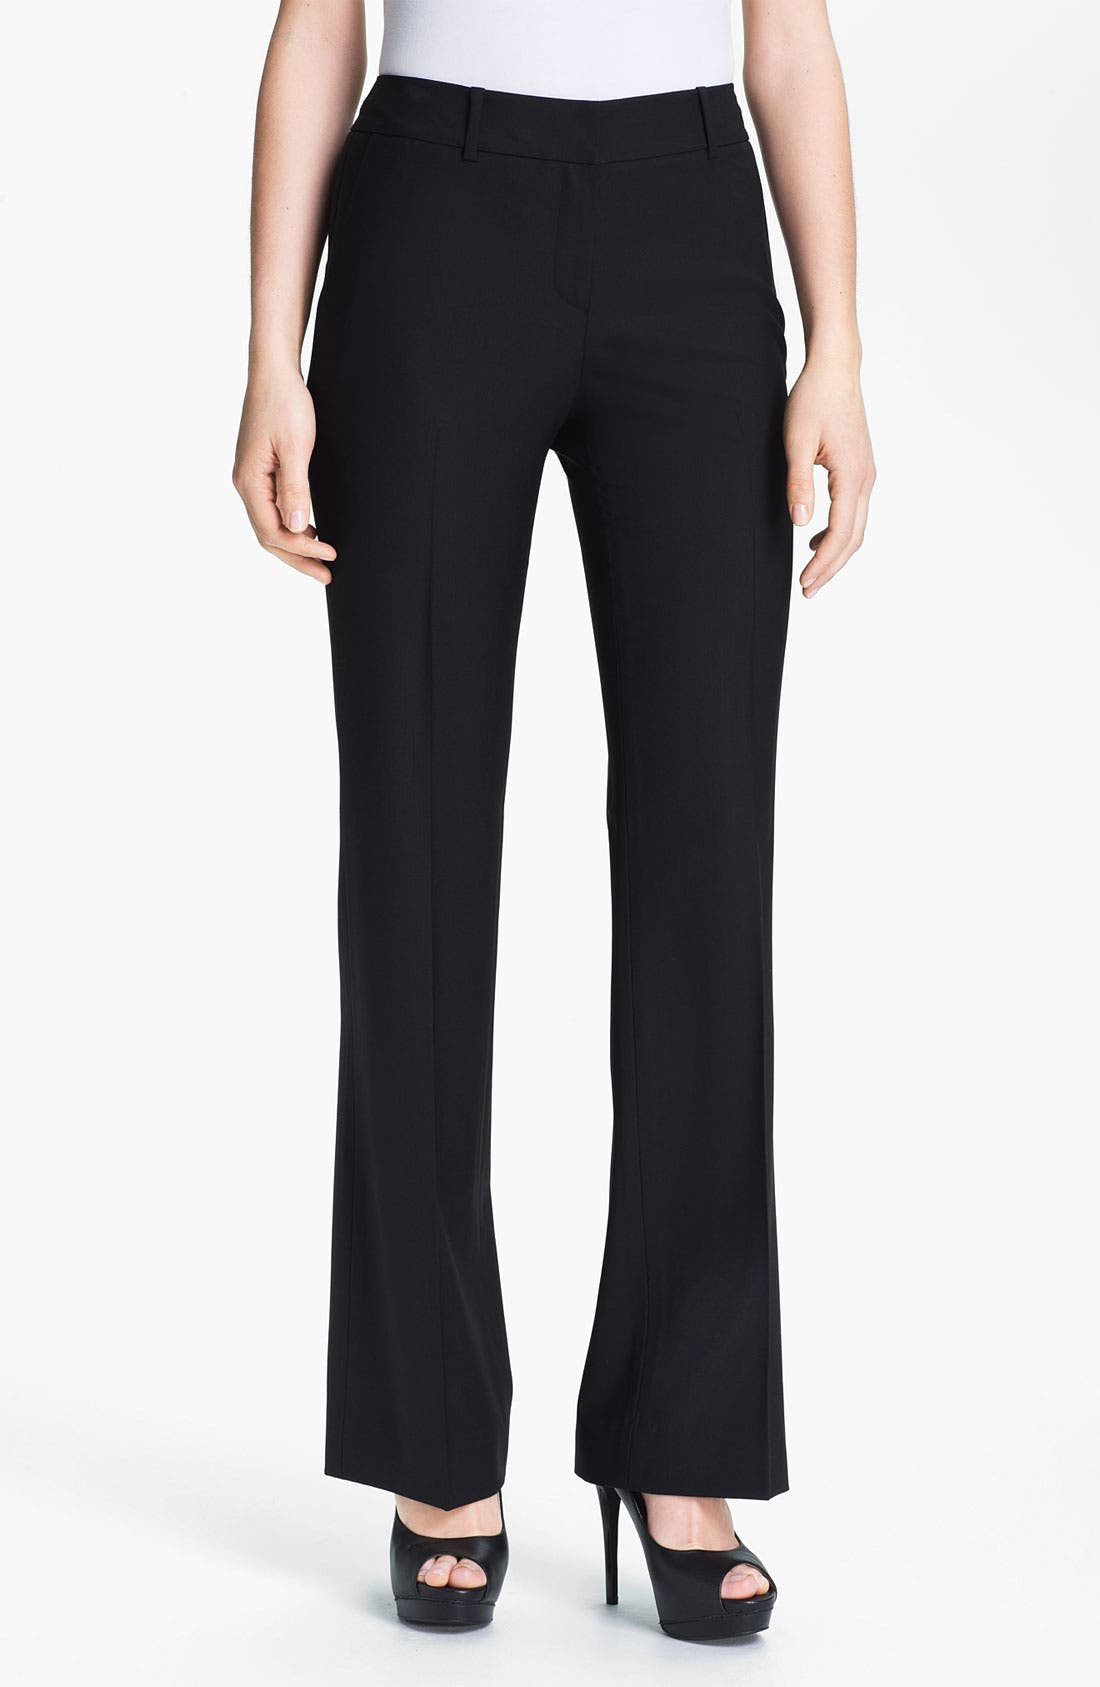 Alternate Image 1 Selected - Classiques Entier Stretch Wool Pants